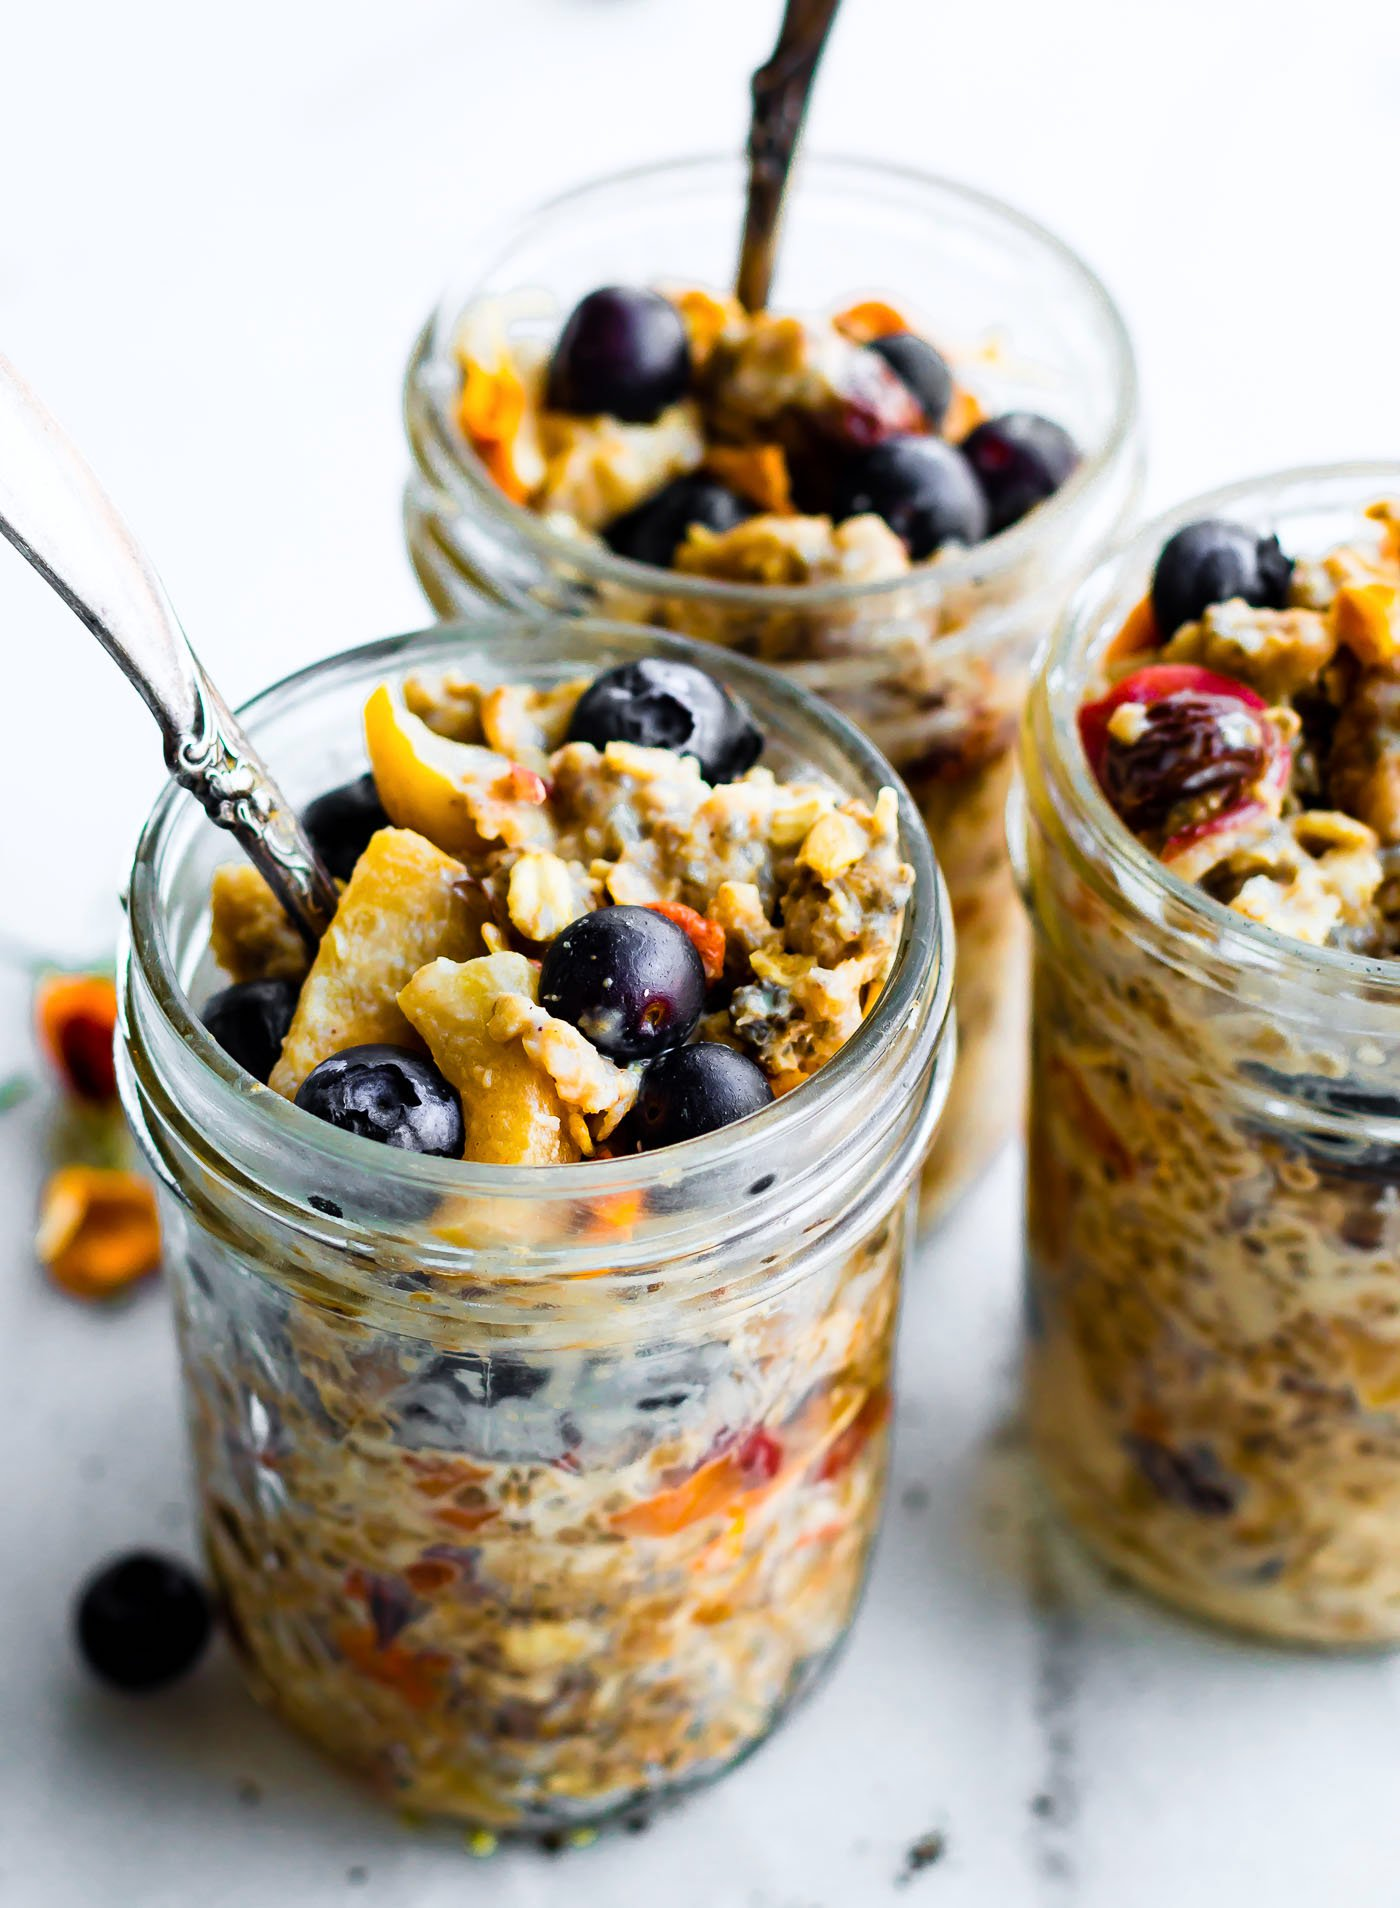 Superfood Instant Pot Oatmeal In A Jar From Cotter Crunch